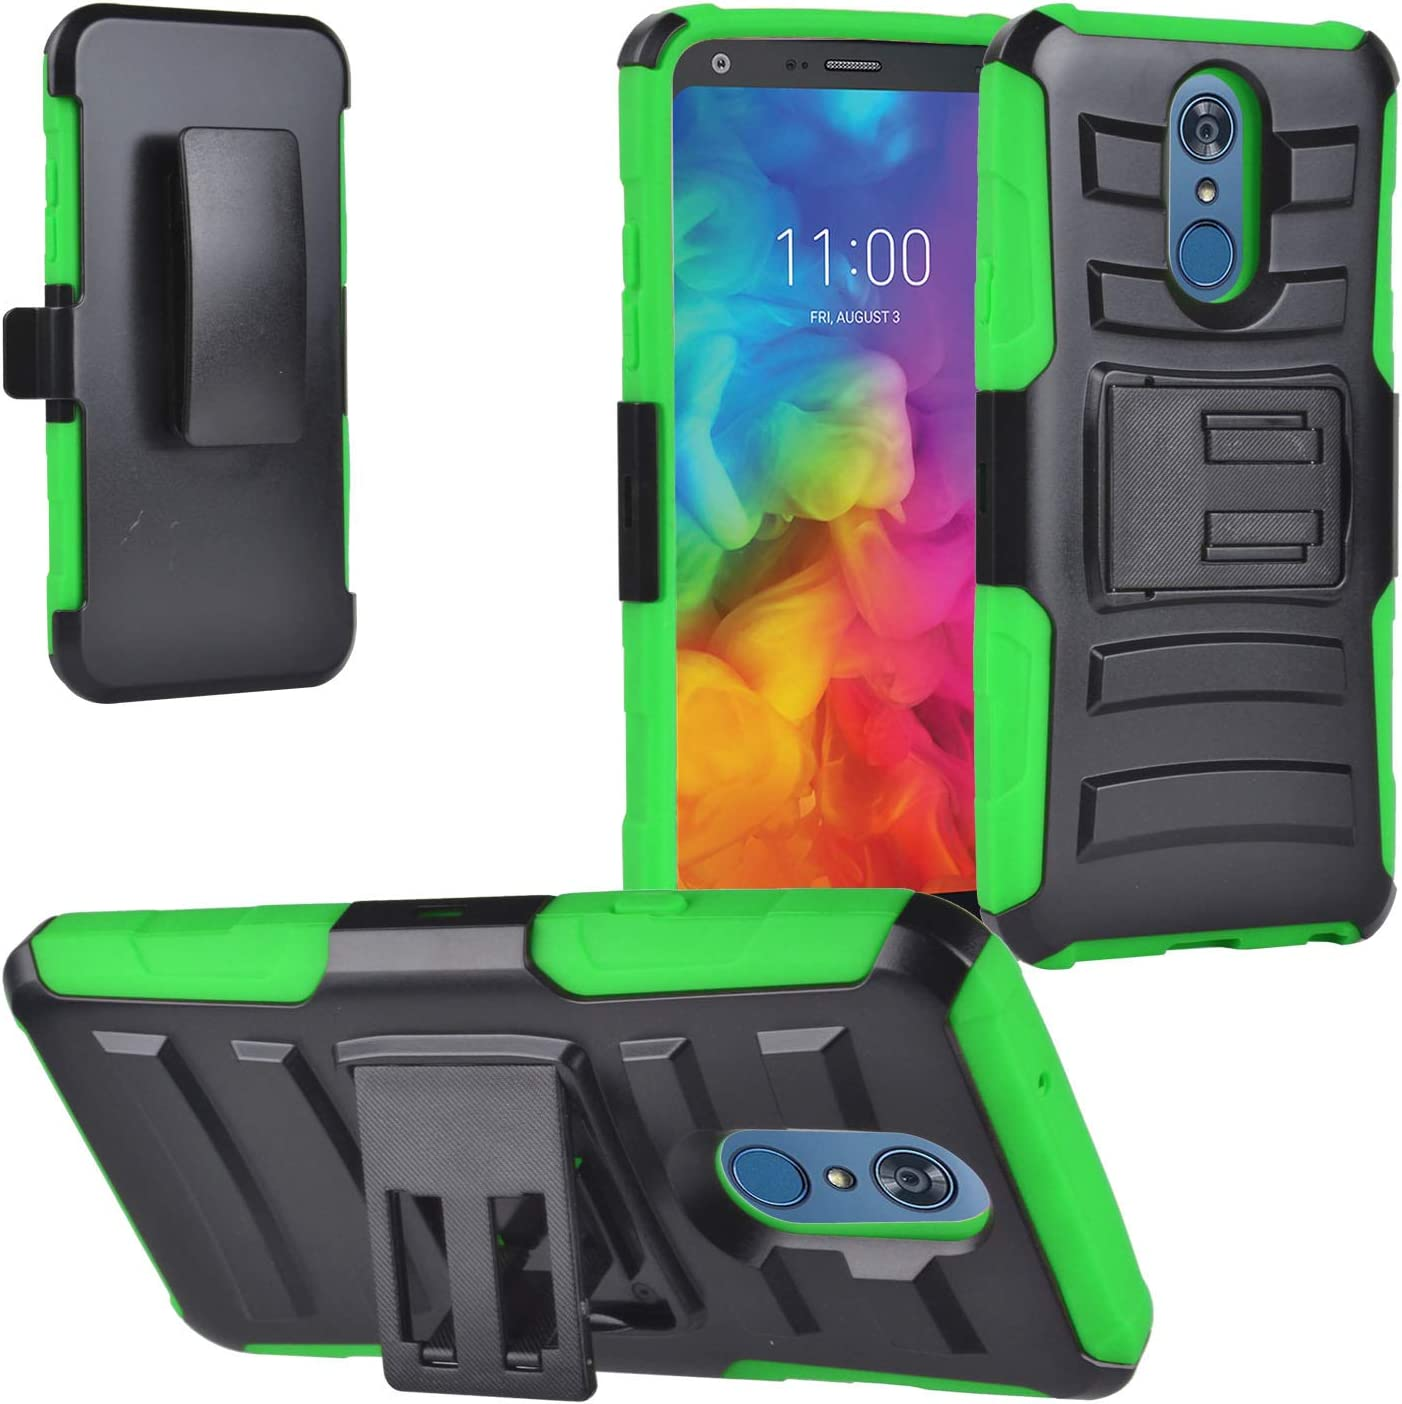 Eaglecell - for LG Q7, Q7+ Plus - Hybrid Case with Stand / Belt Clip Holster - SP01 Green